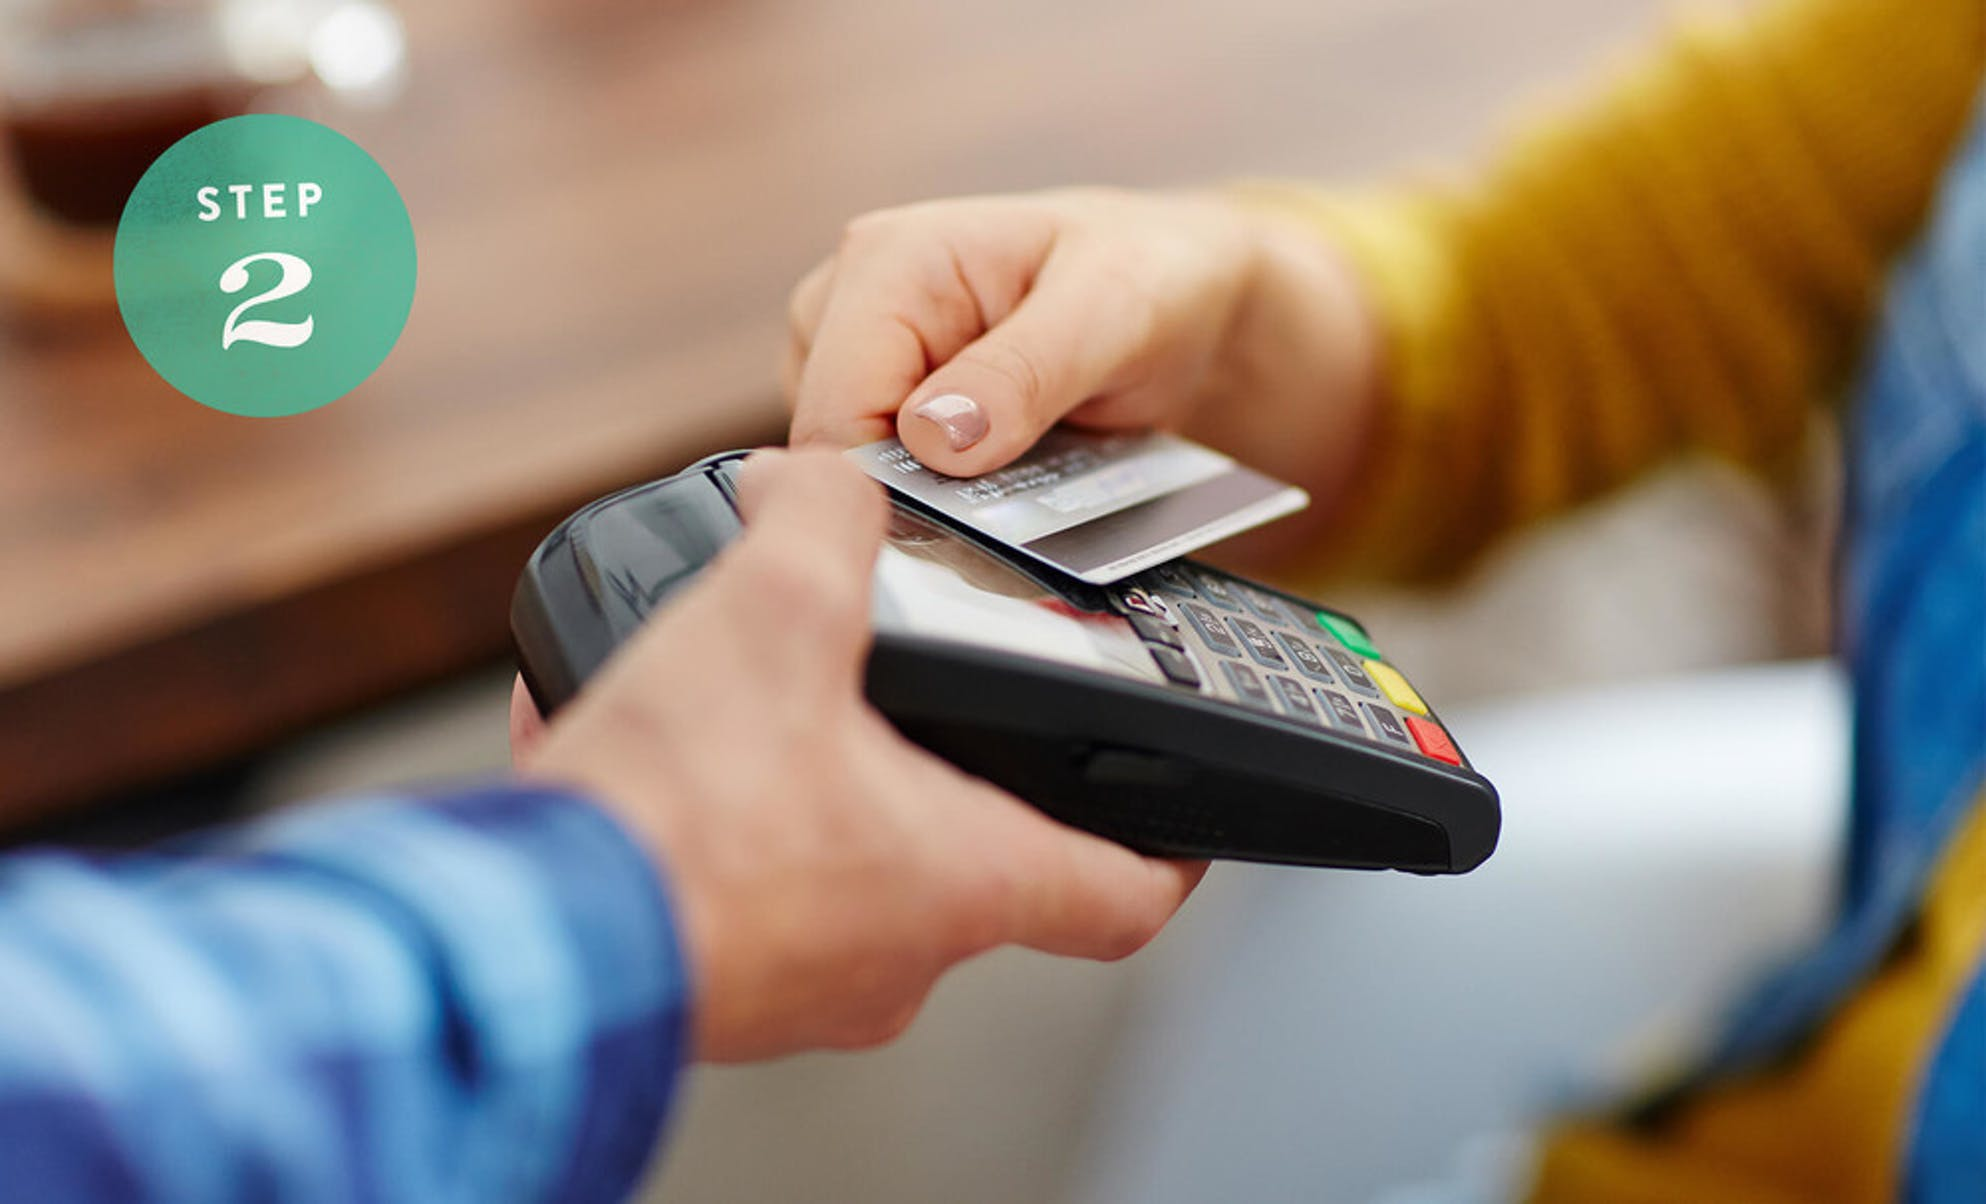 Purchasing an item using a credit card